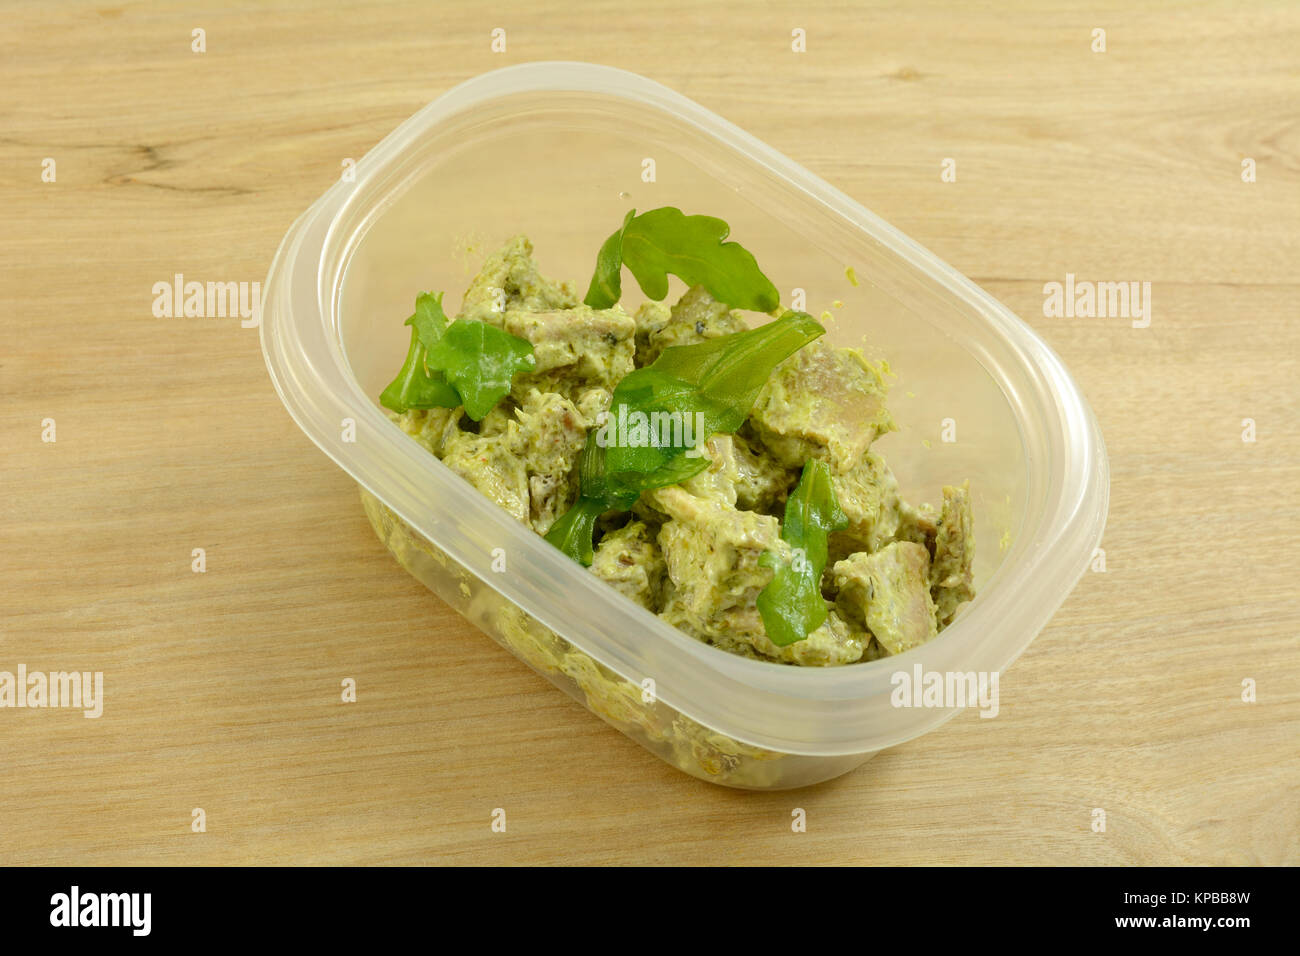 Pesto chicken salad packed in plastic storage container for lunch at